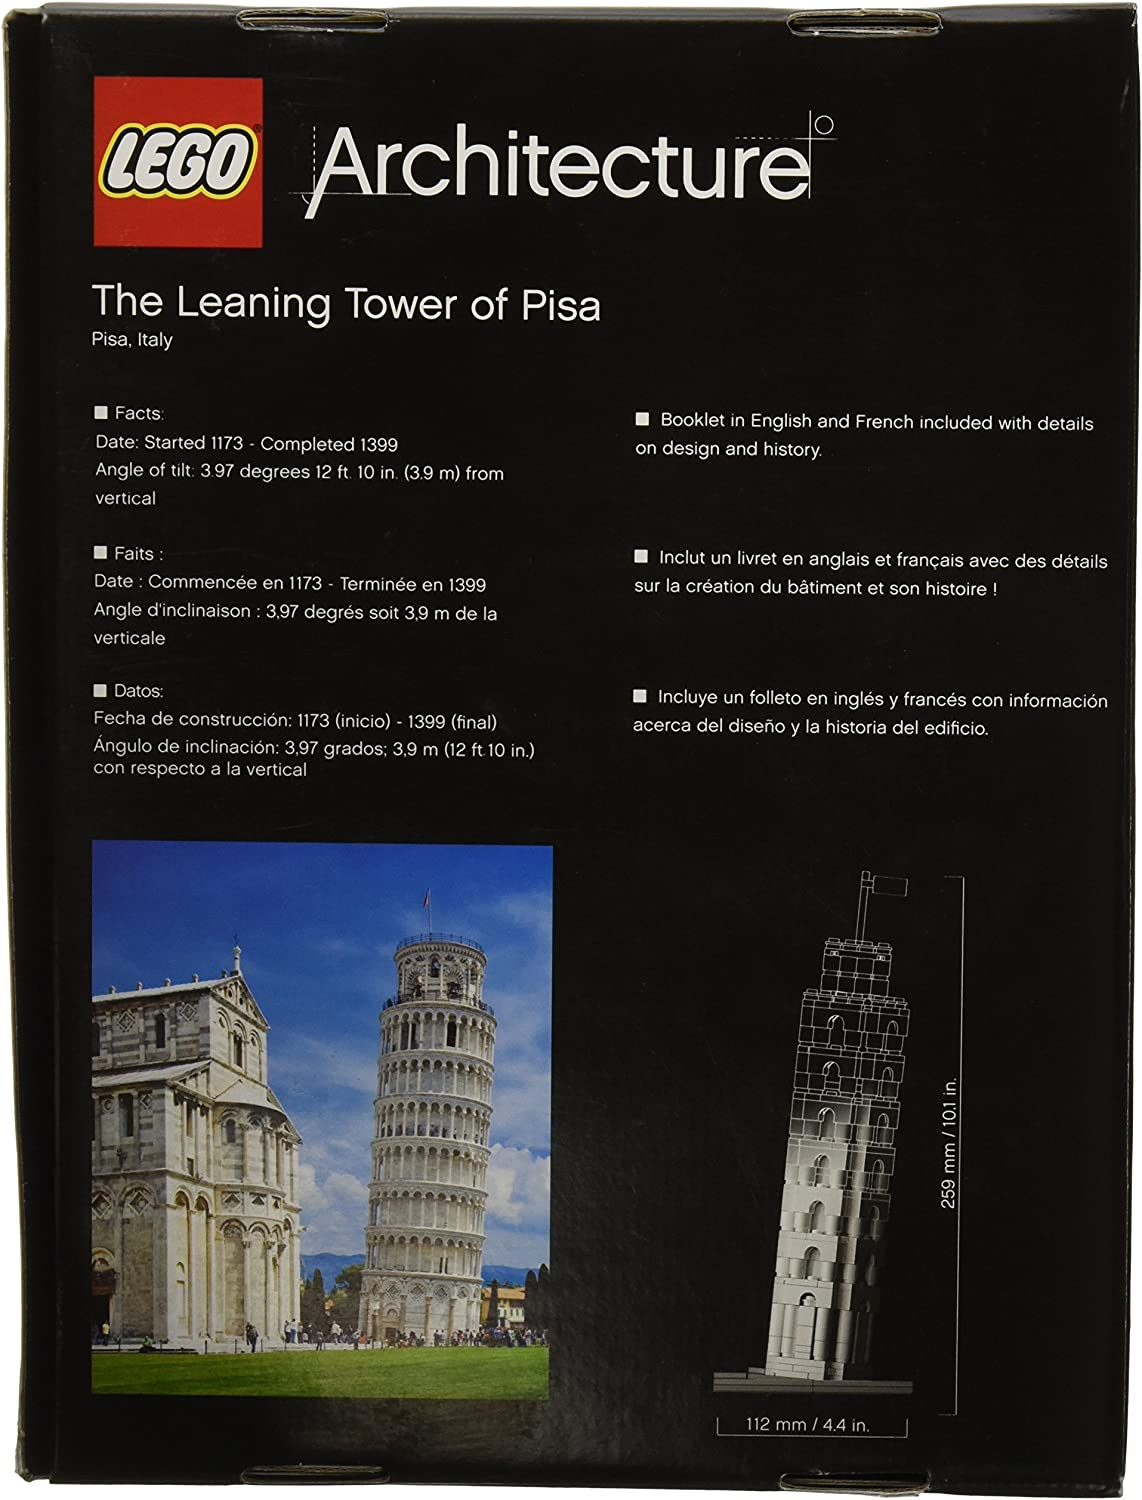 LEGO Architecture The Leaning Tower of Pisa (Discontinued by manufacturer) by LEGO: Amazon.es: Juguetes y juegos